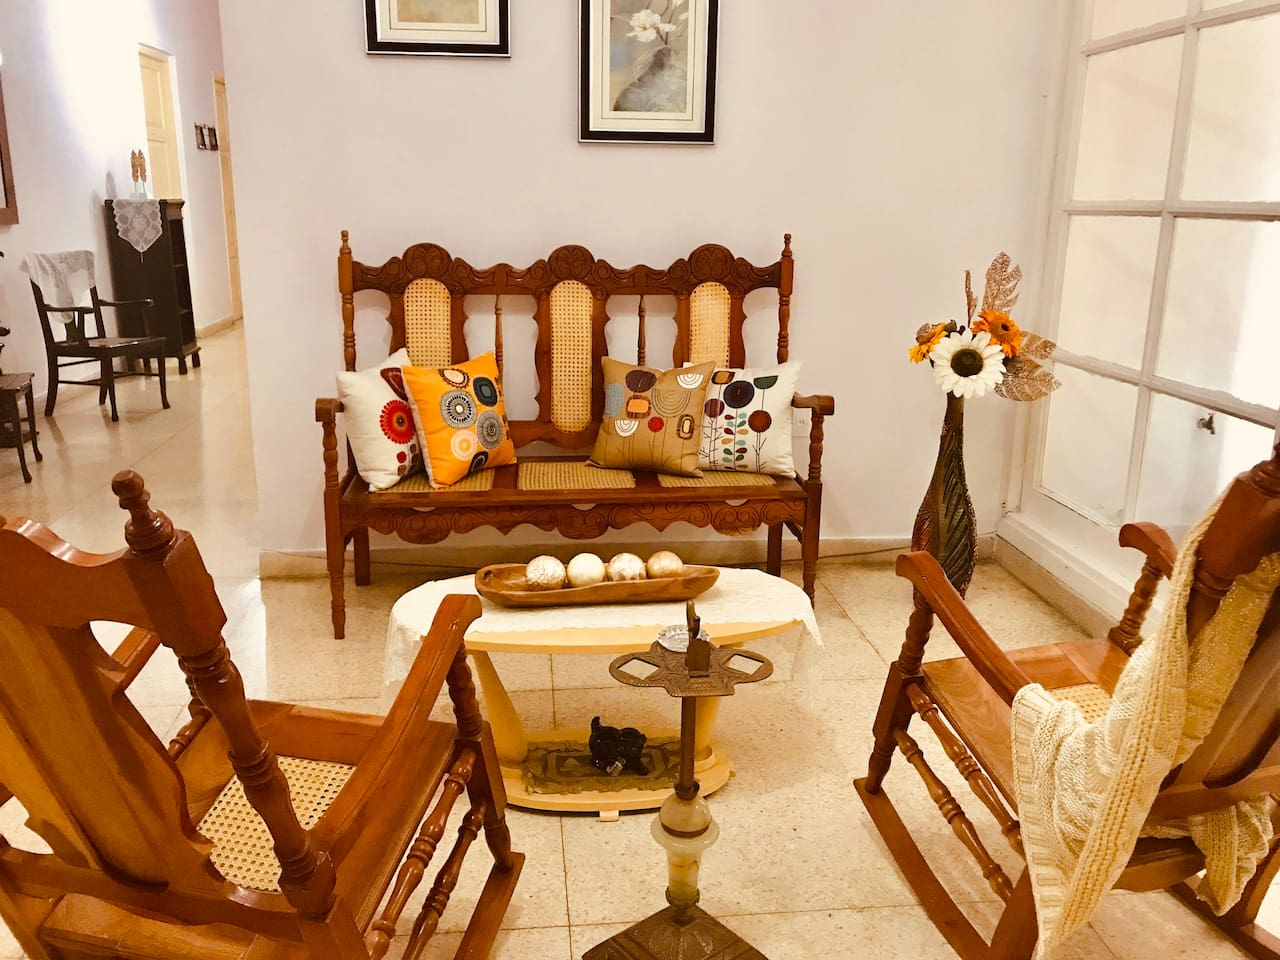 Beautiful house in the center of the city,close to all many important places to visit ,only two blocks away from Monument al Tren Blindado. Spacious with many common areas for big groups and families.